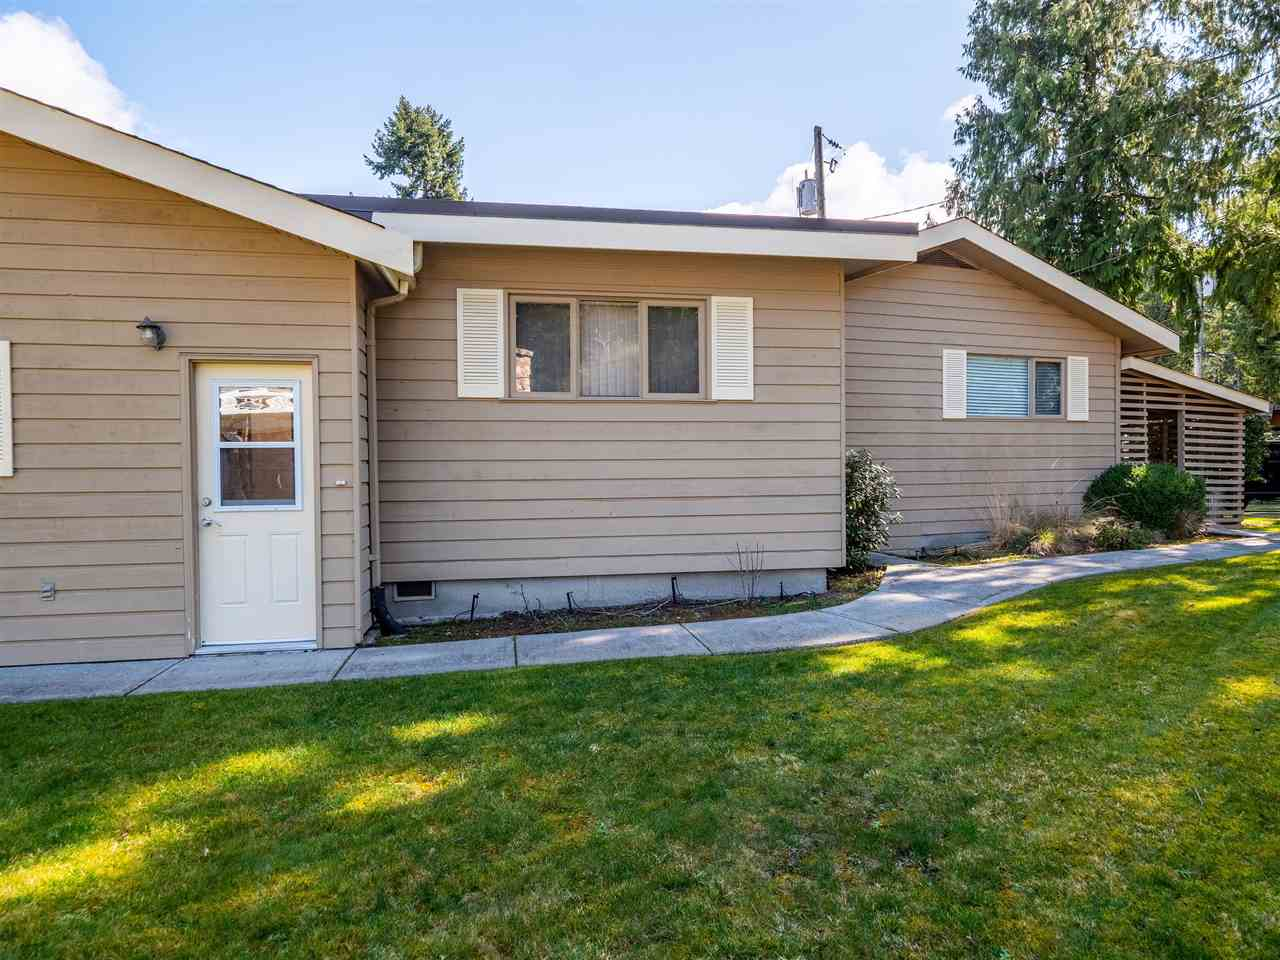 11 4995 GONZALES ROAD - Pender Harbour Egmont House/Single Family for sale, 2 Bedrooms (R2447947) - #18